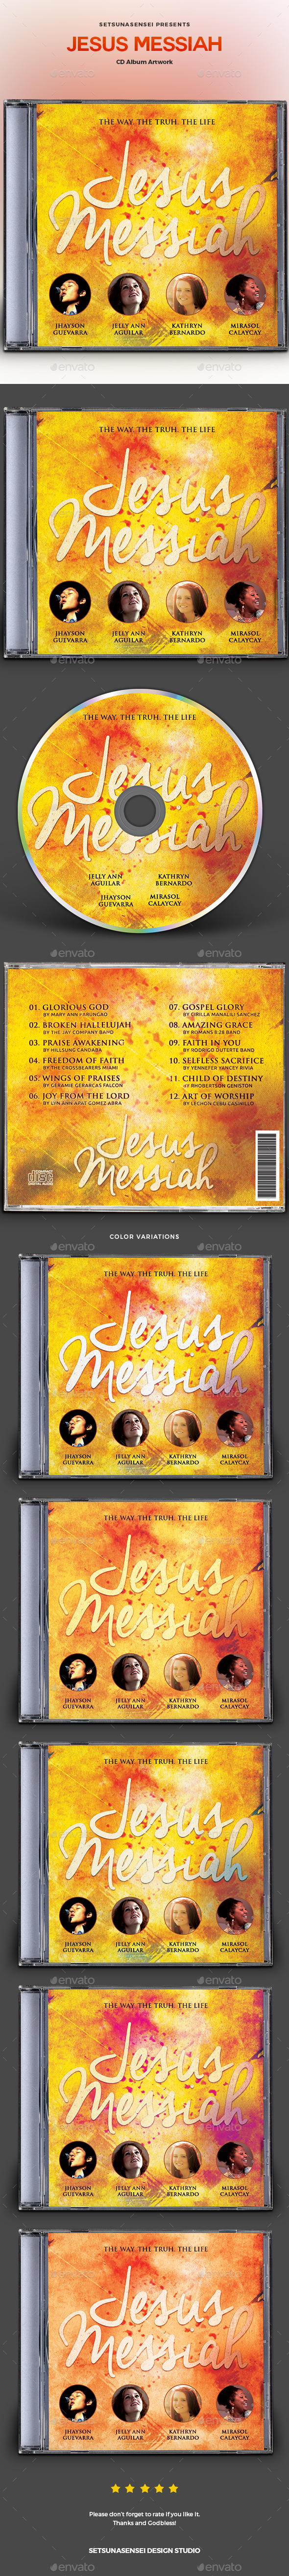 Jesus Messiah CD Album Artwork - CD & DVD Artwork Print Templates